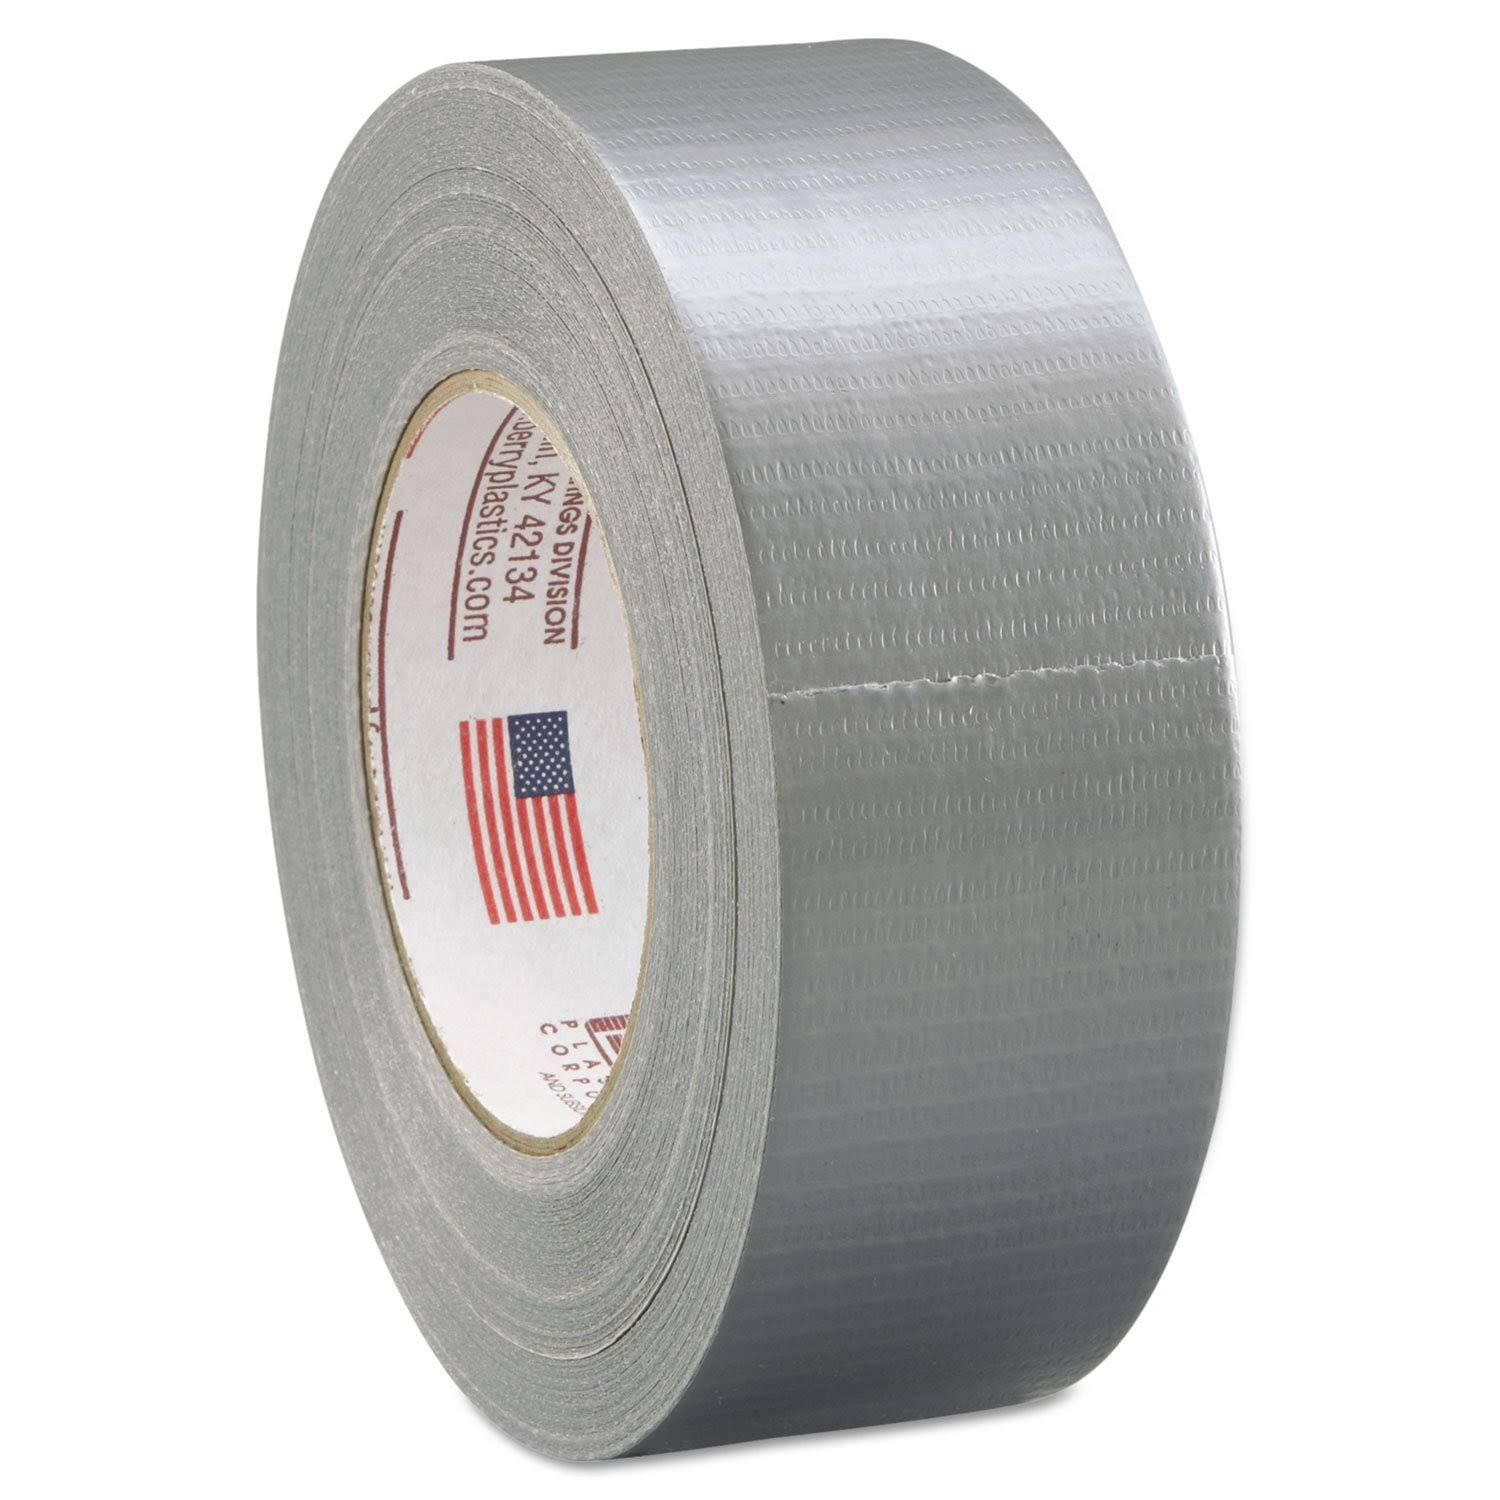 Nashua General Purpose Duct Tape